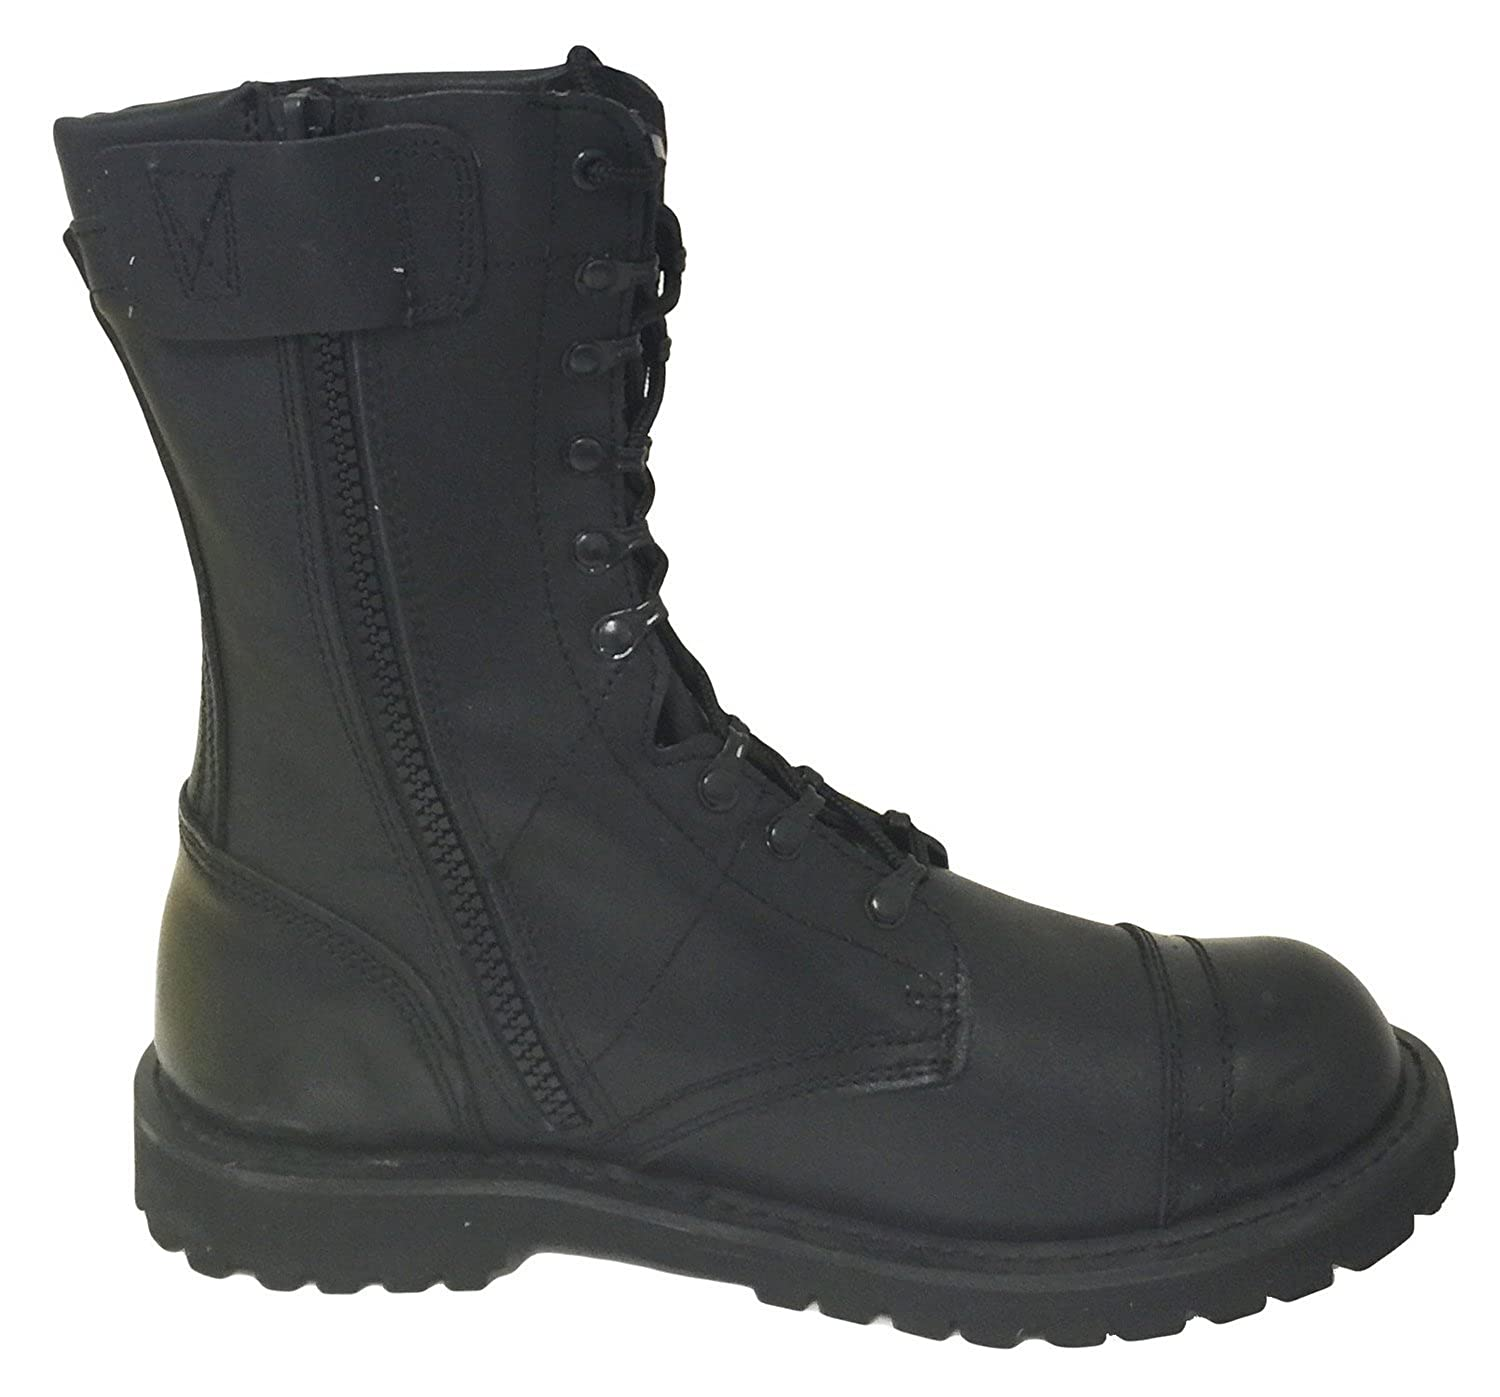 A1B18V Men's Tactical Boots Leather Black Combat Military 10 Inch Cap Toe Side Zipper Army Work Shoes